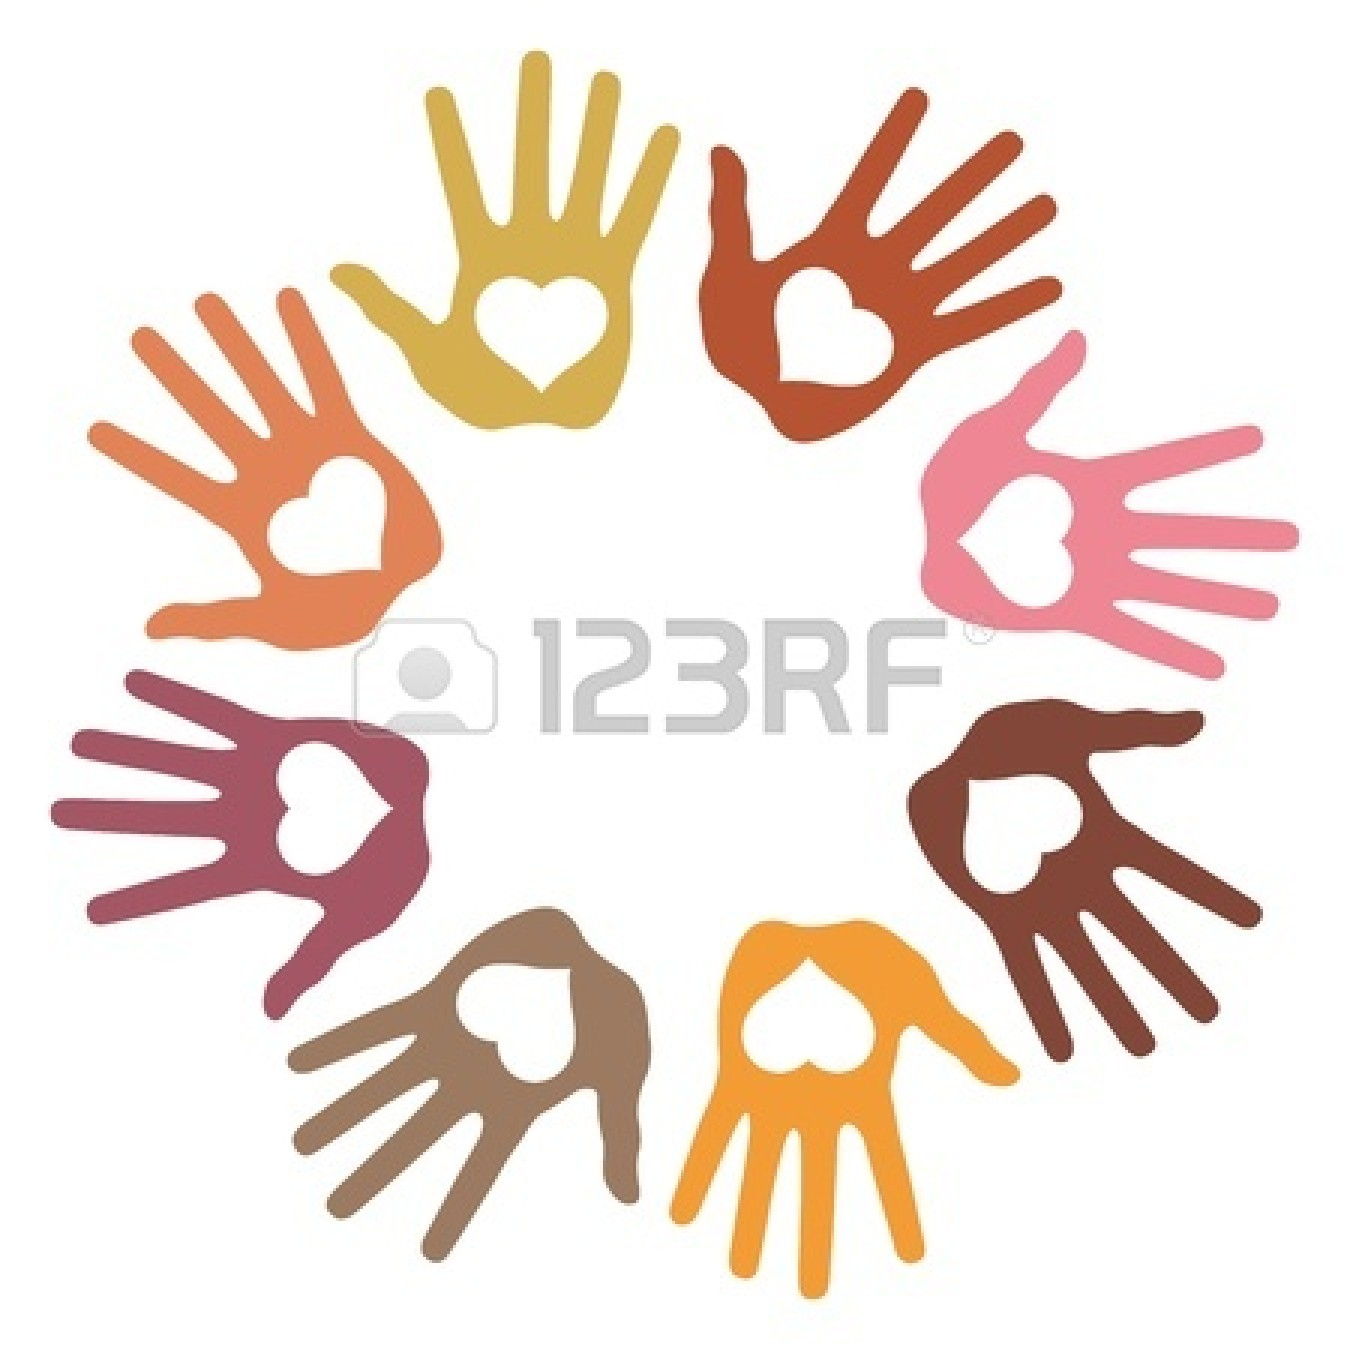 Hands in circle clipart svg transparent library Holding Hands In A Circle | Free download best Holding Hands In A ... svg transparent library